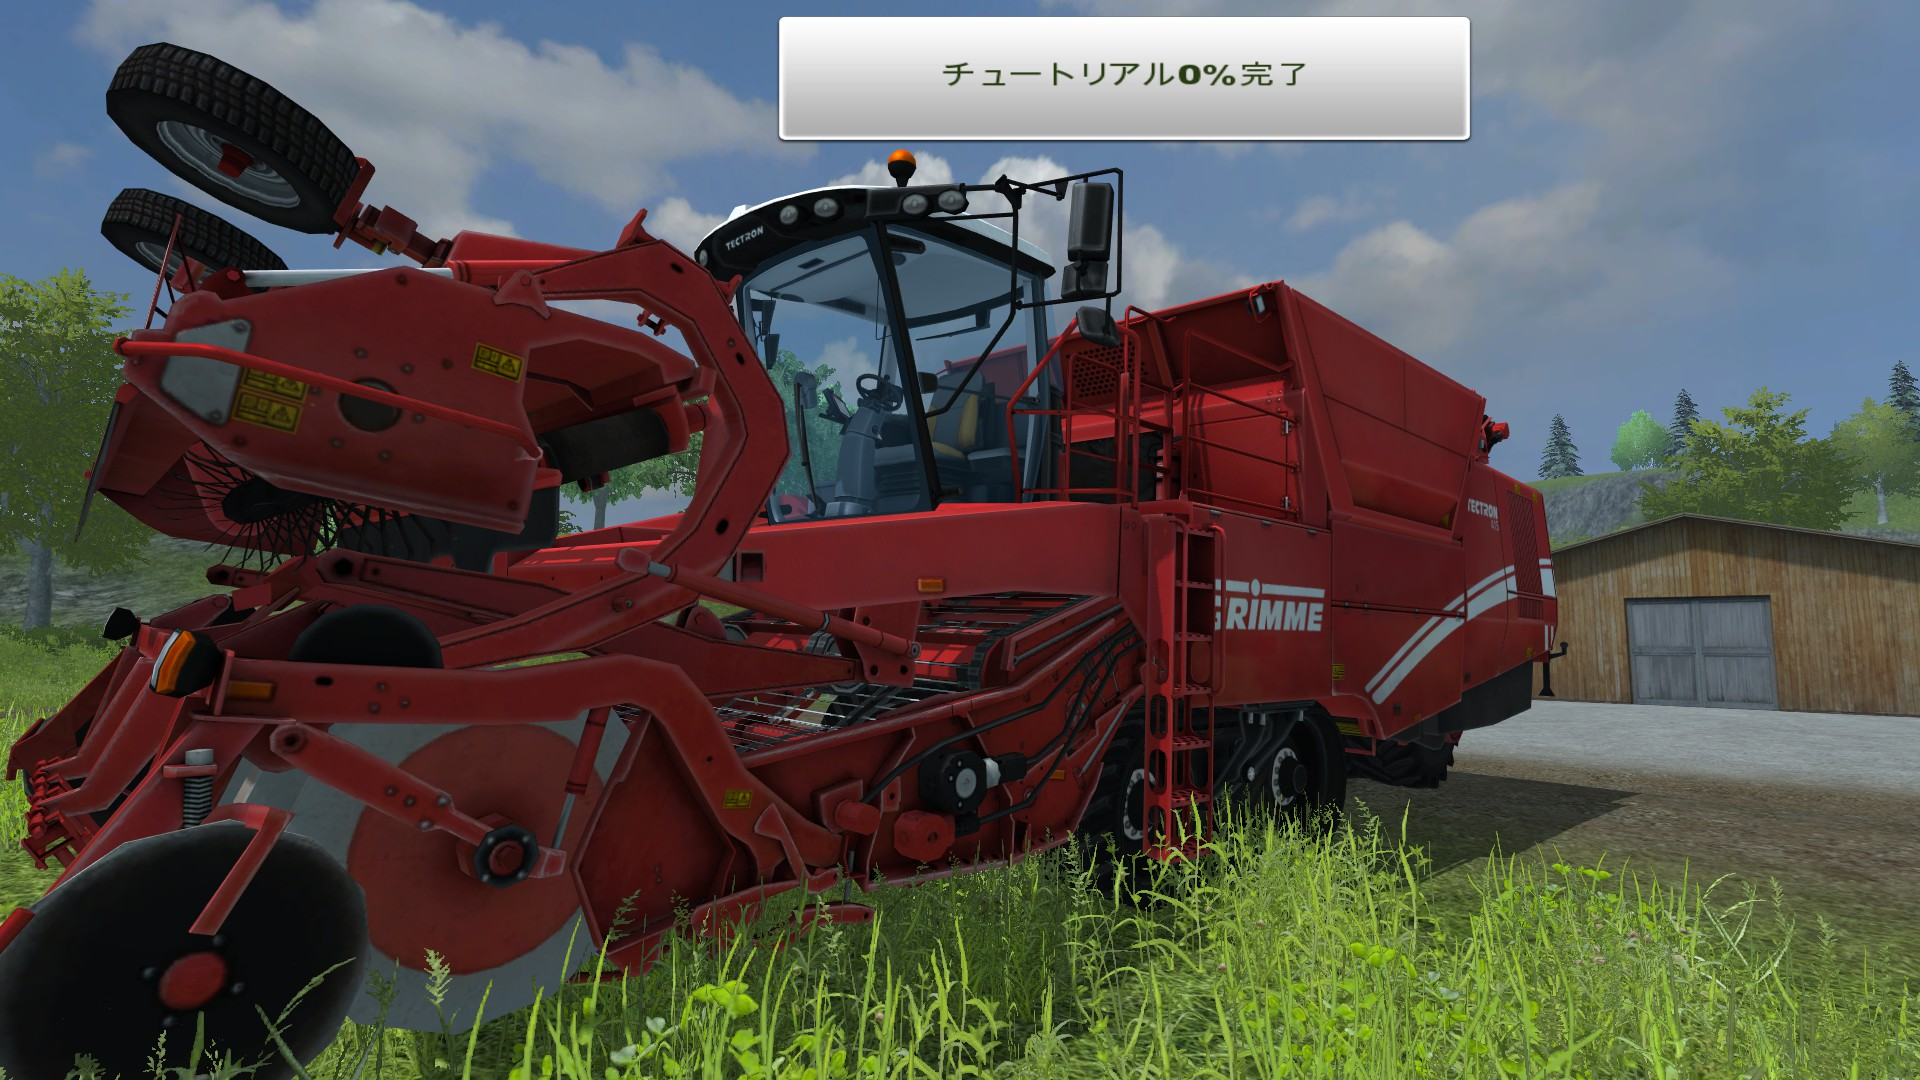 「Grimme TECTRON415ジャガイモ収穫機」